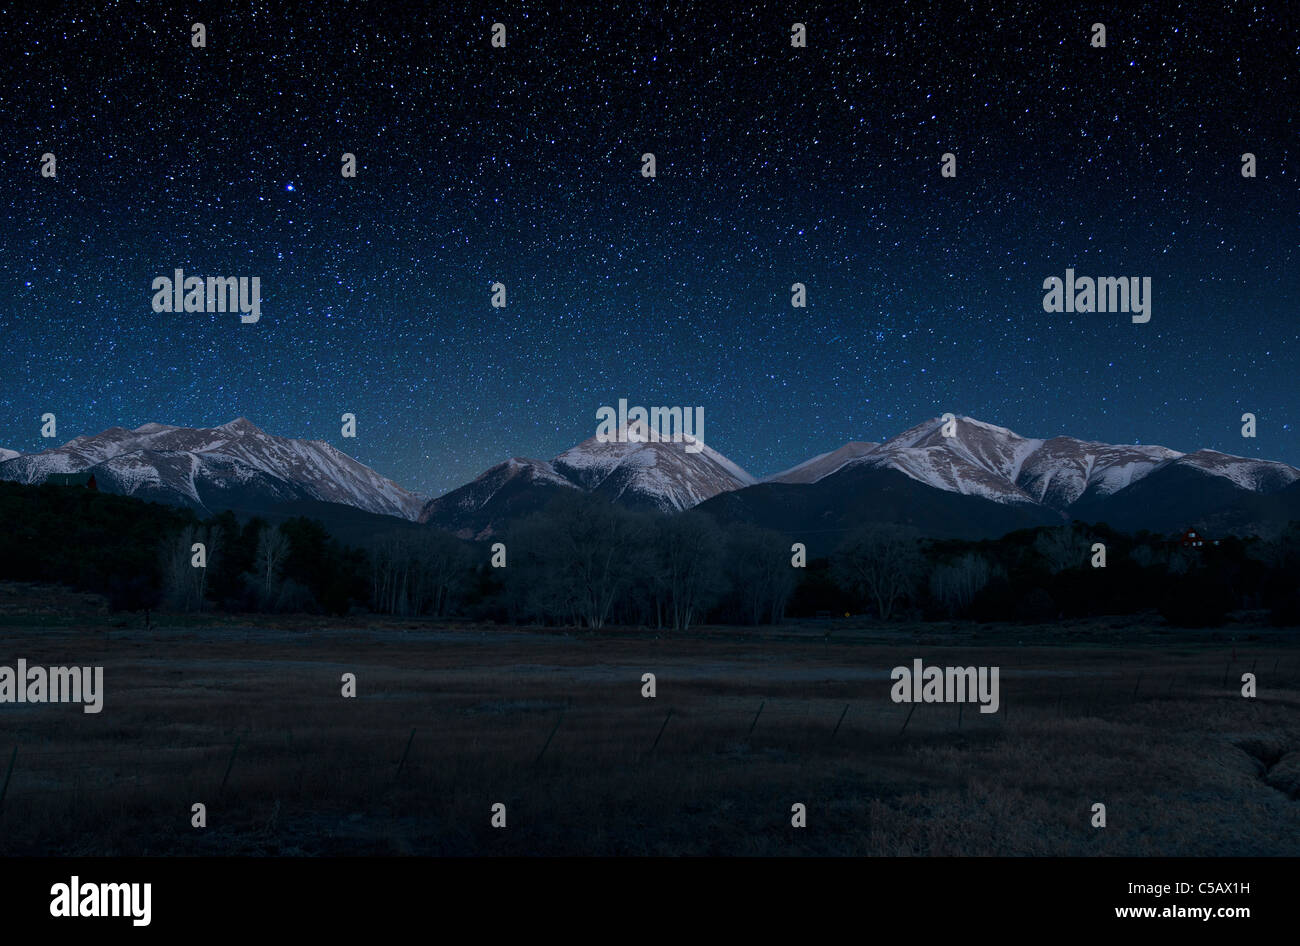 Star filled sky of the Collegiate Peaks, Sawatch Range, Chaffee County, Colorado, USA - Stock Image